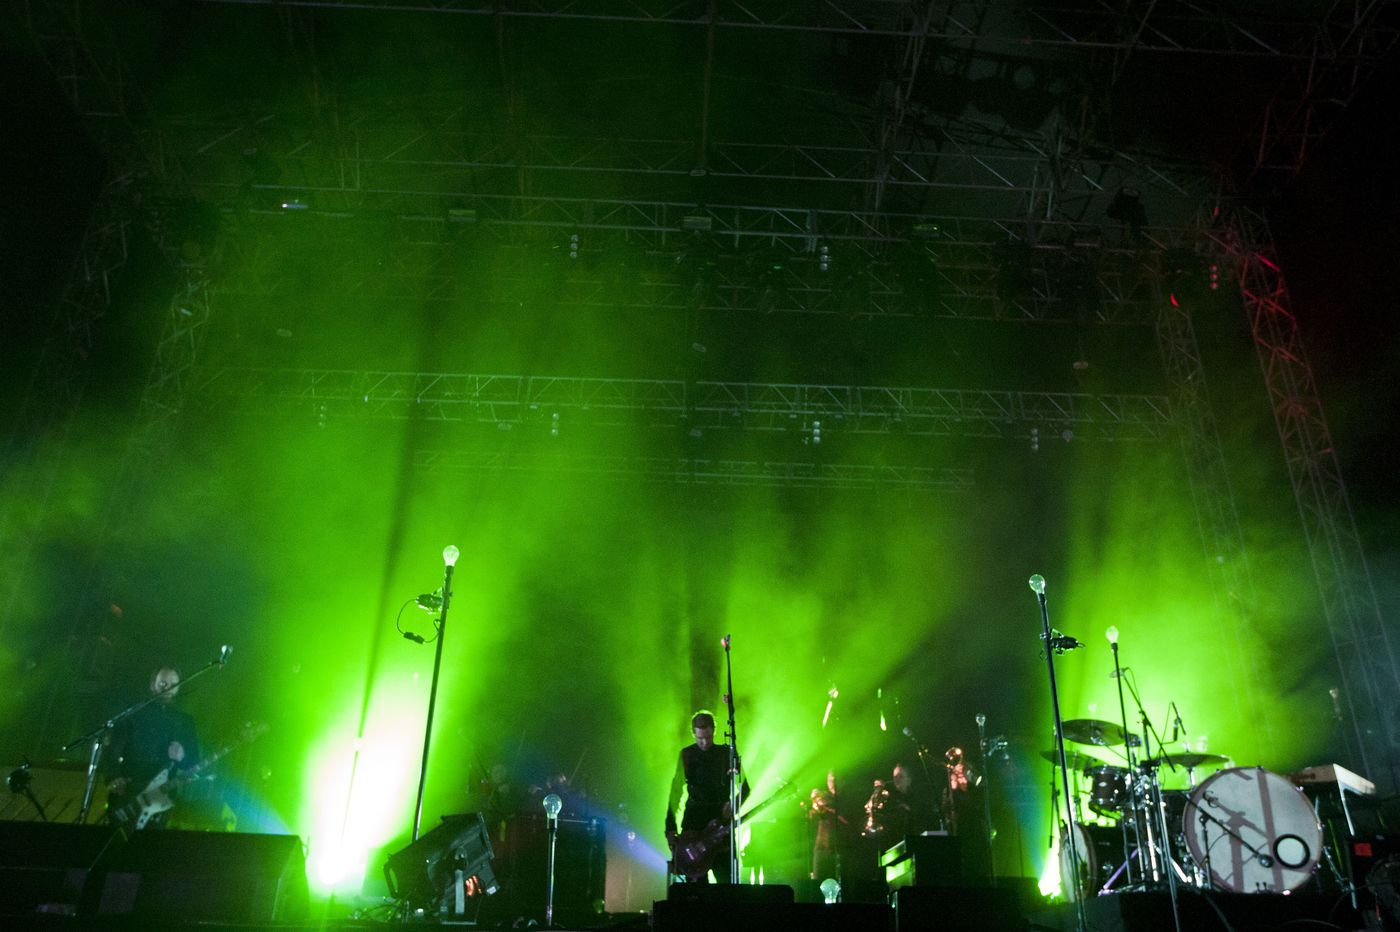 Icelandic rock band Sigur Ros charged with tax evasion